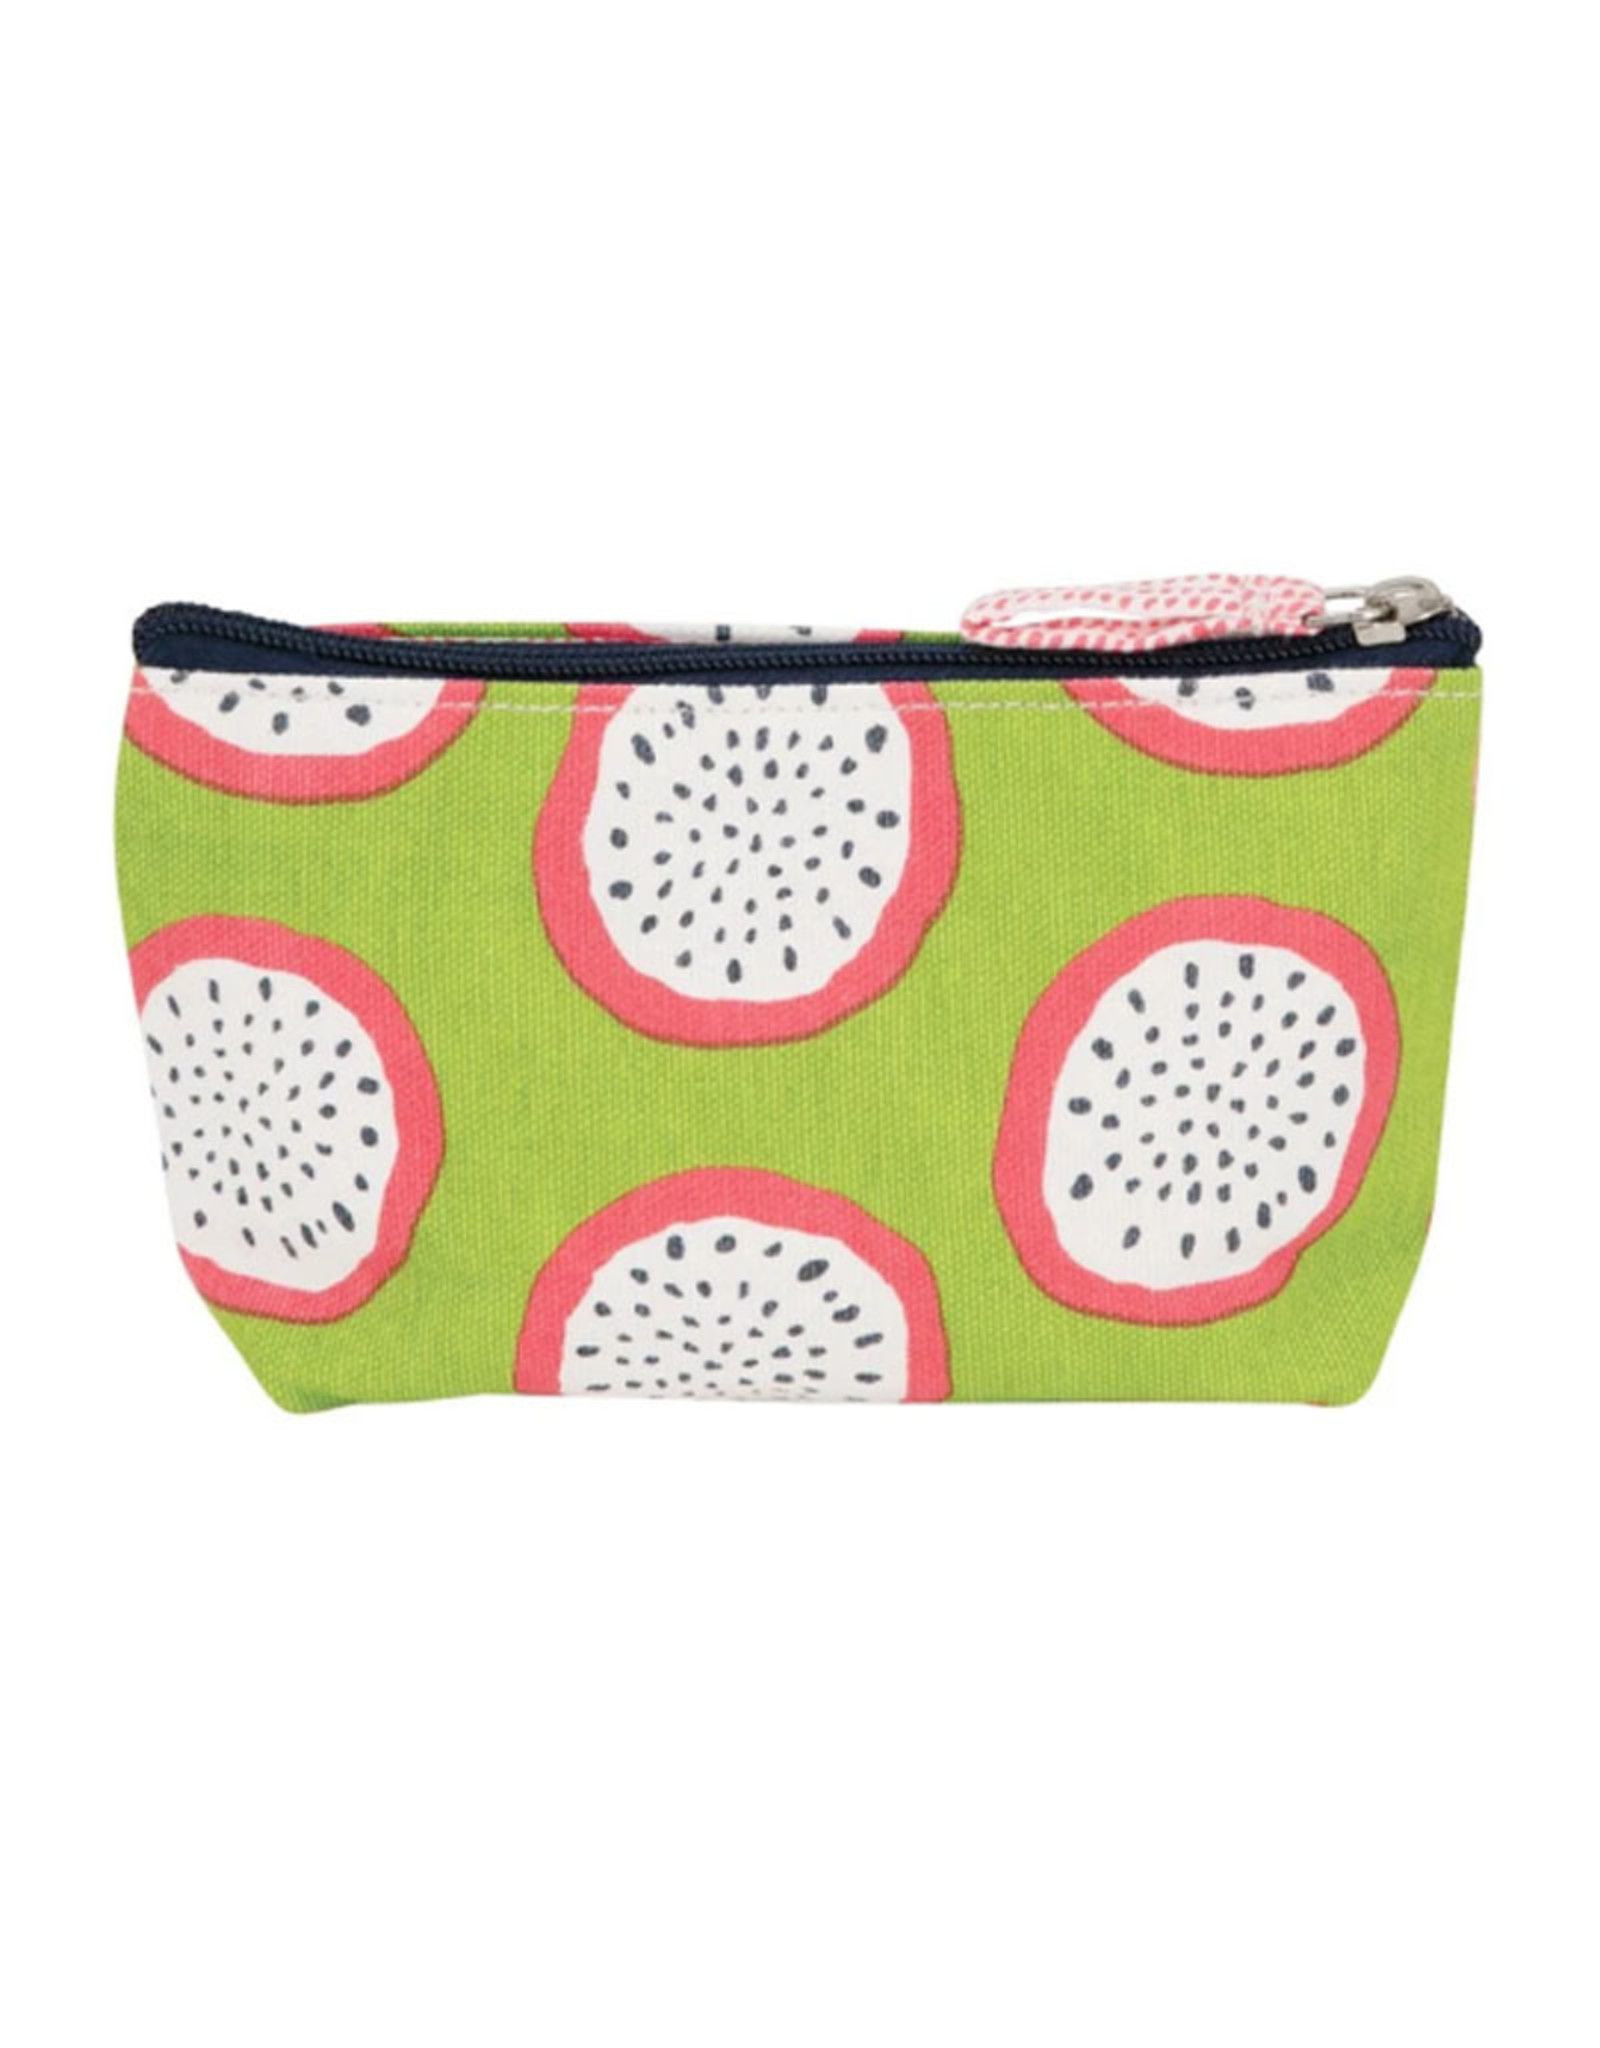 Small Pouch: Dragonfruit Lime